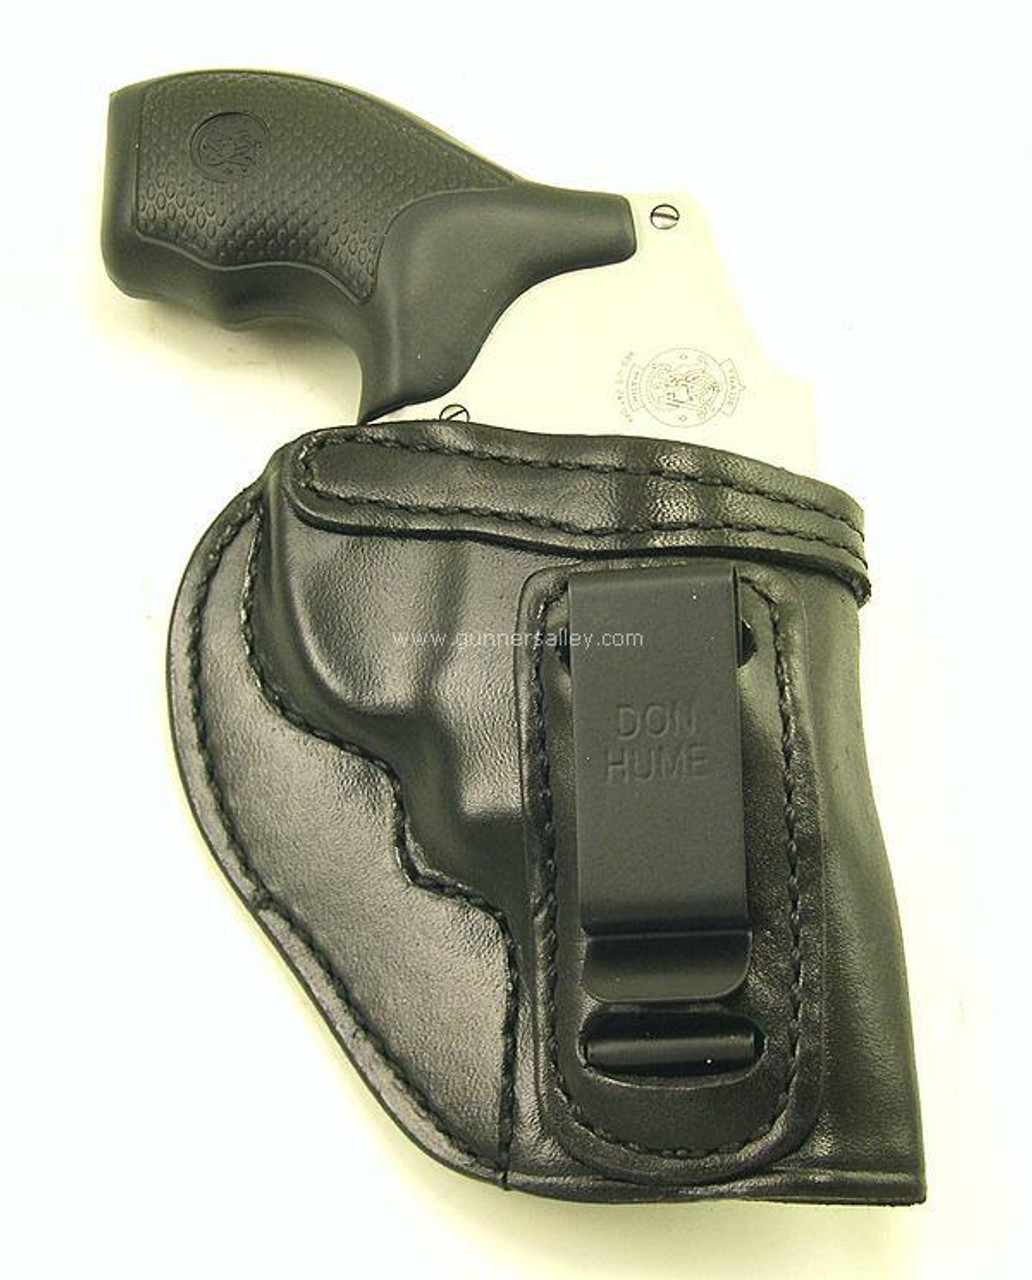 """Black - Front View - Shown with a S&W J Frame 2"""" Revolver for Demonstration Purposes"""